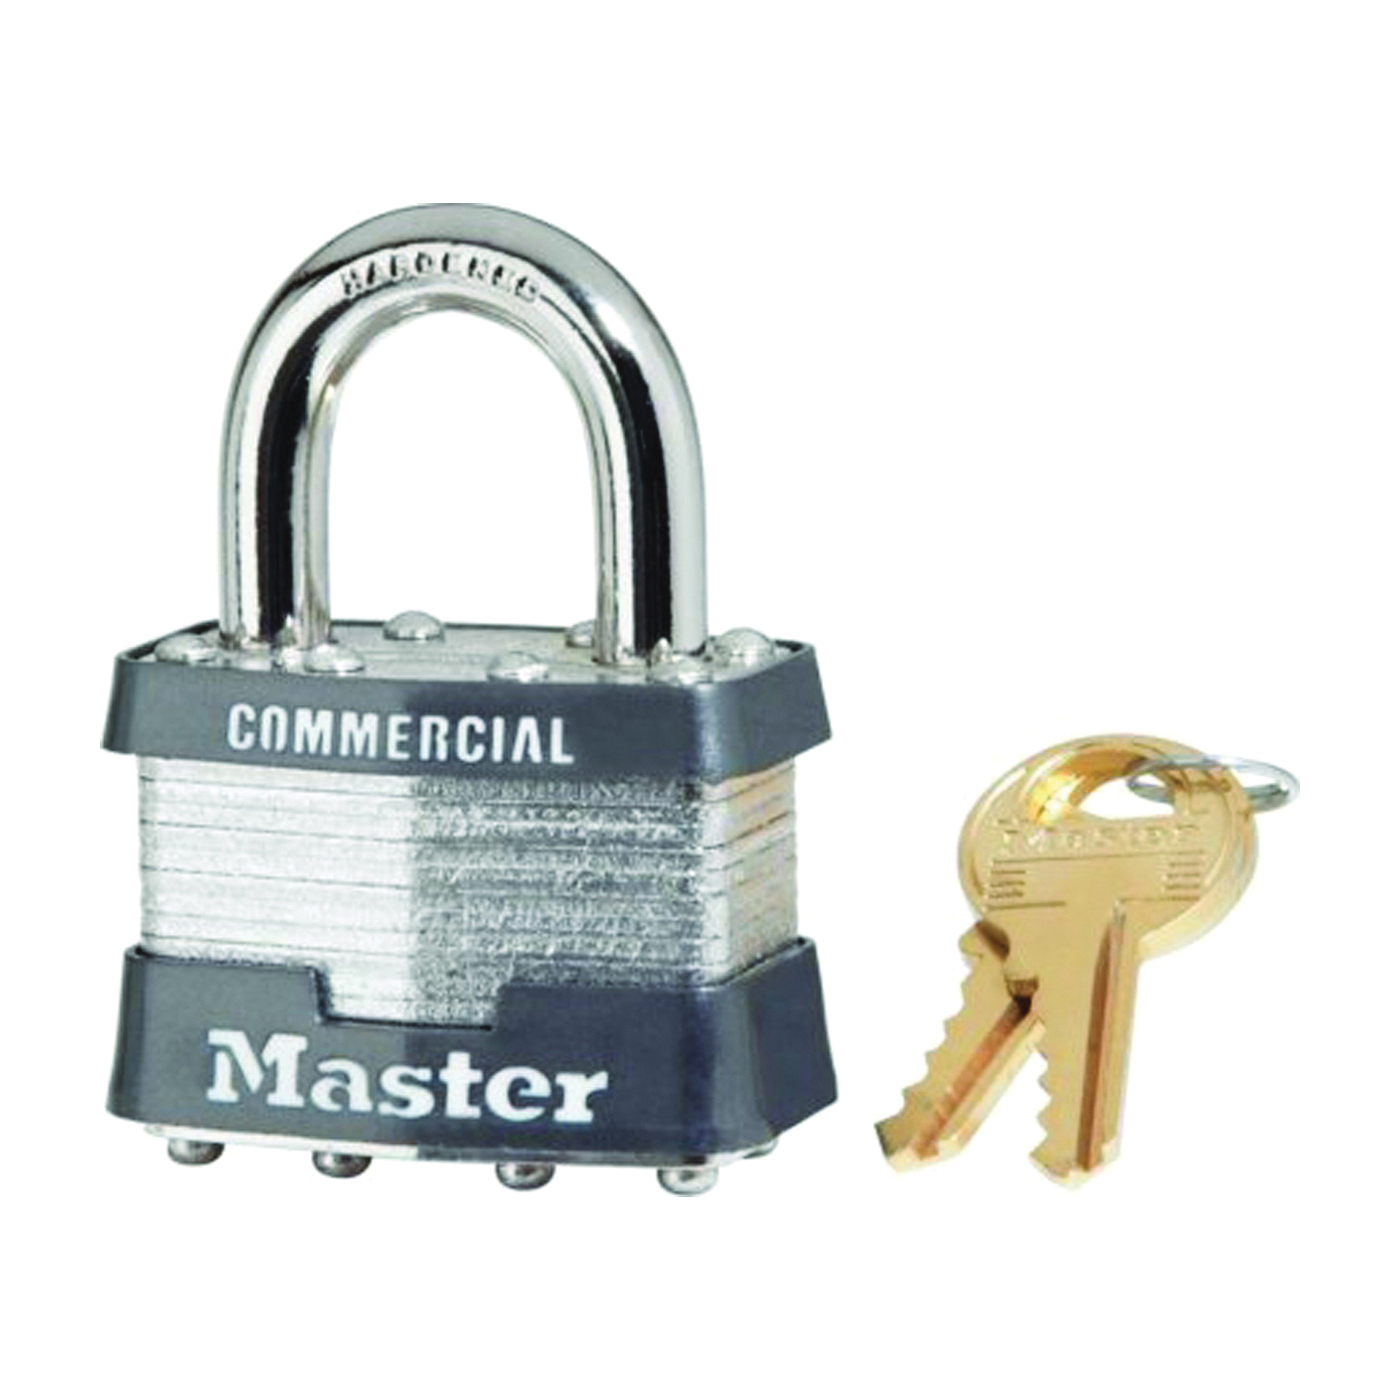 Picture of Master Lock 1KA 2008 Keyed Padlock, Alike Key, Open Shackle, 5/16 in Dia Shackle, 15/16 in H Shackle, Steel Shackle